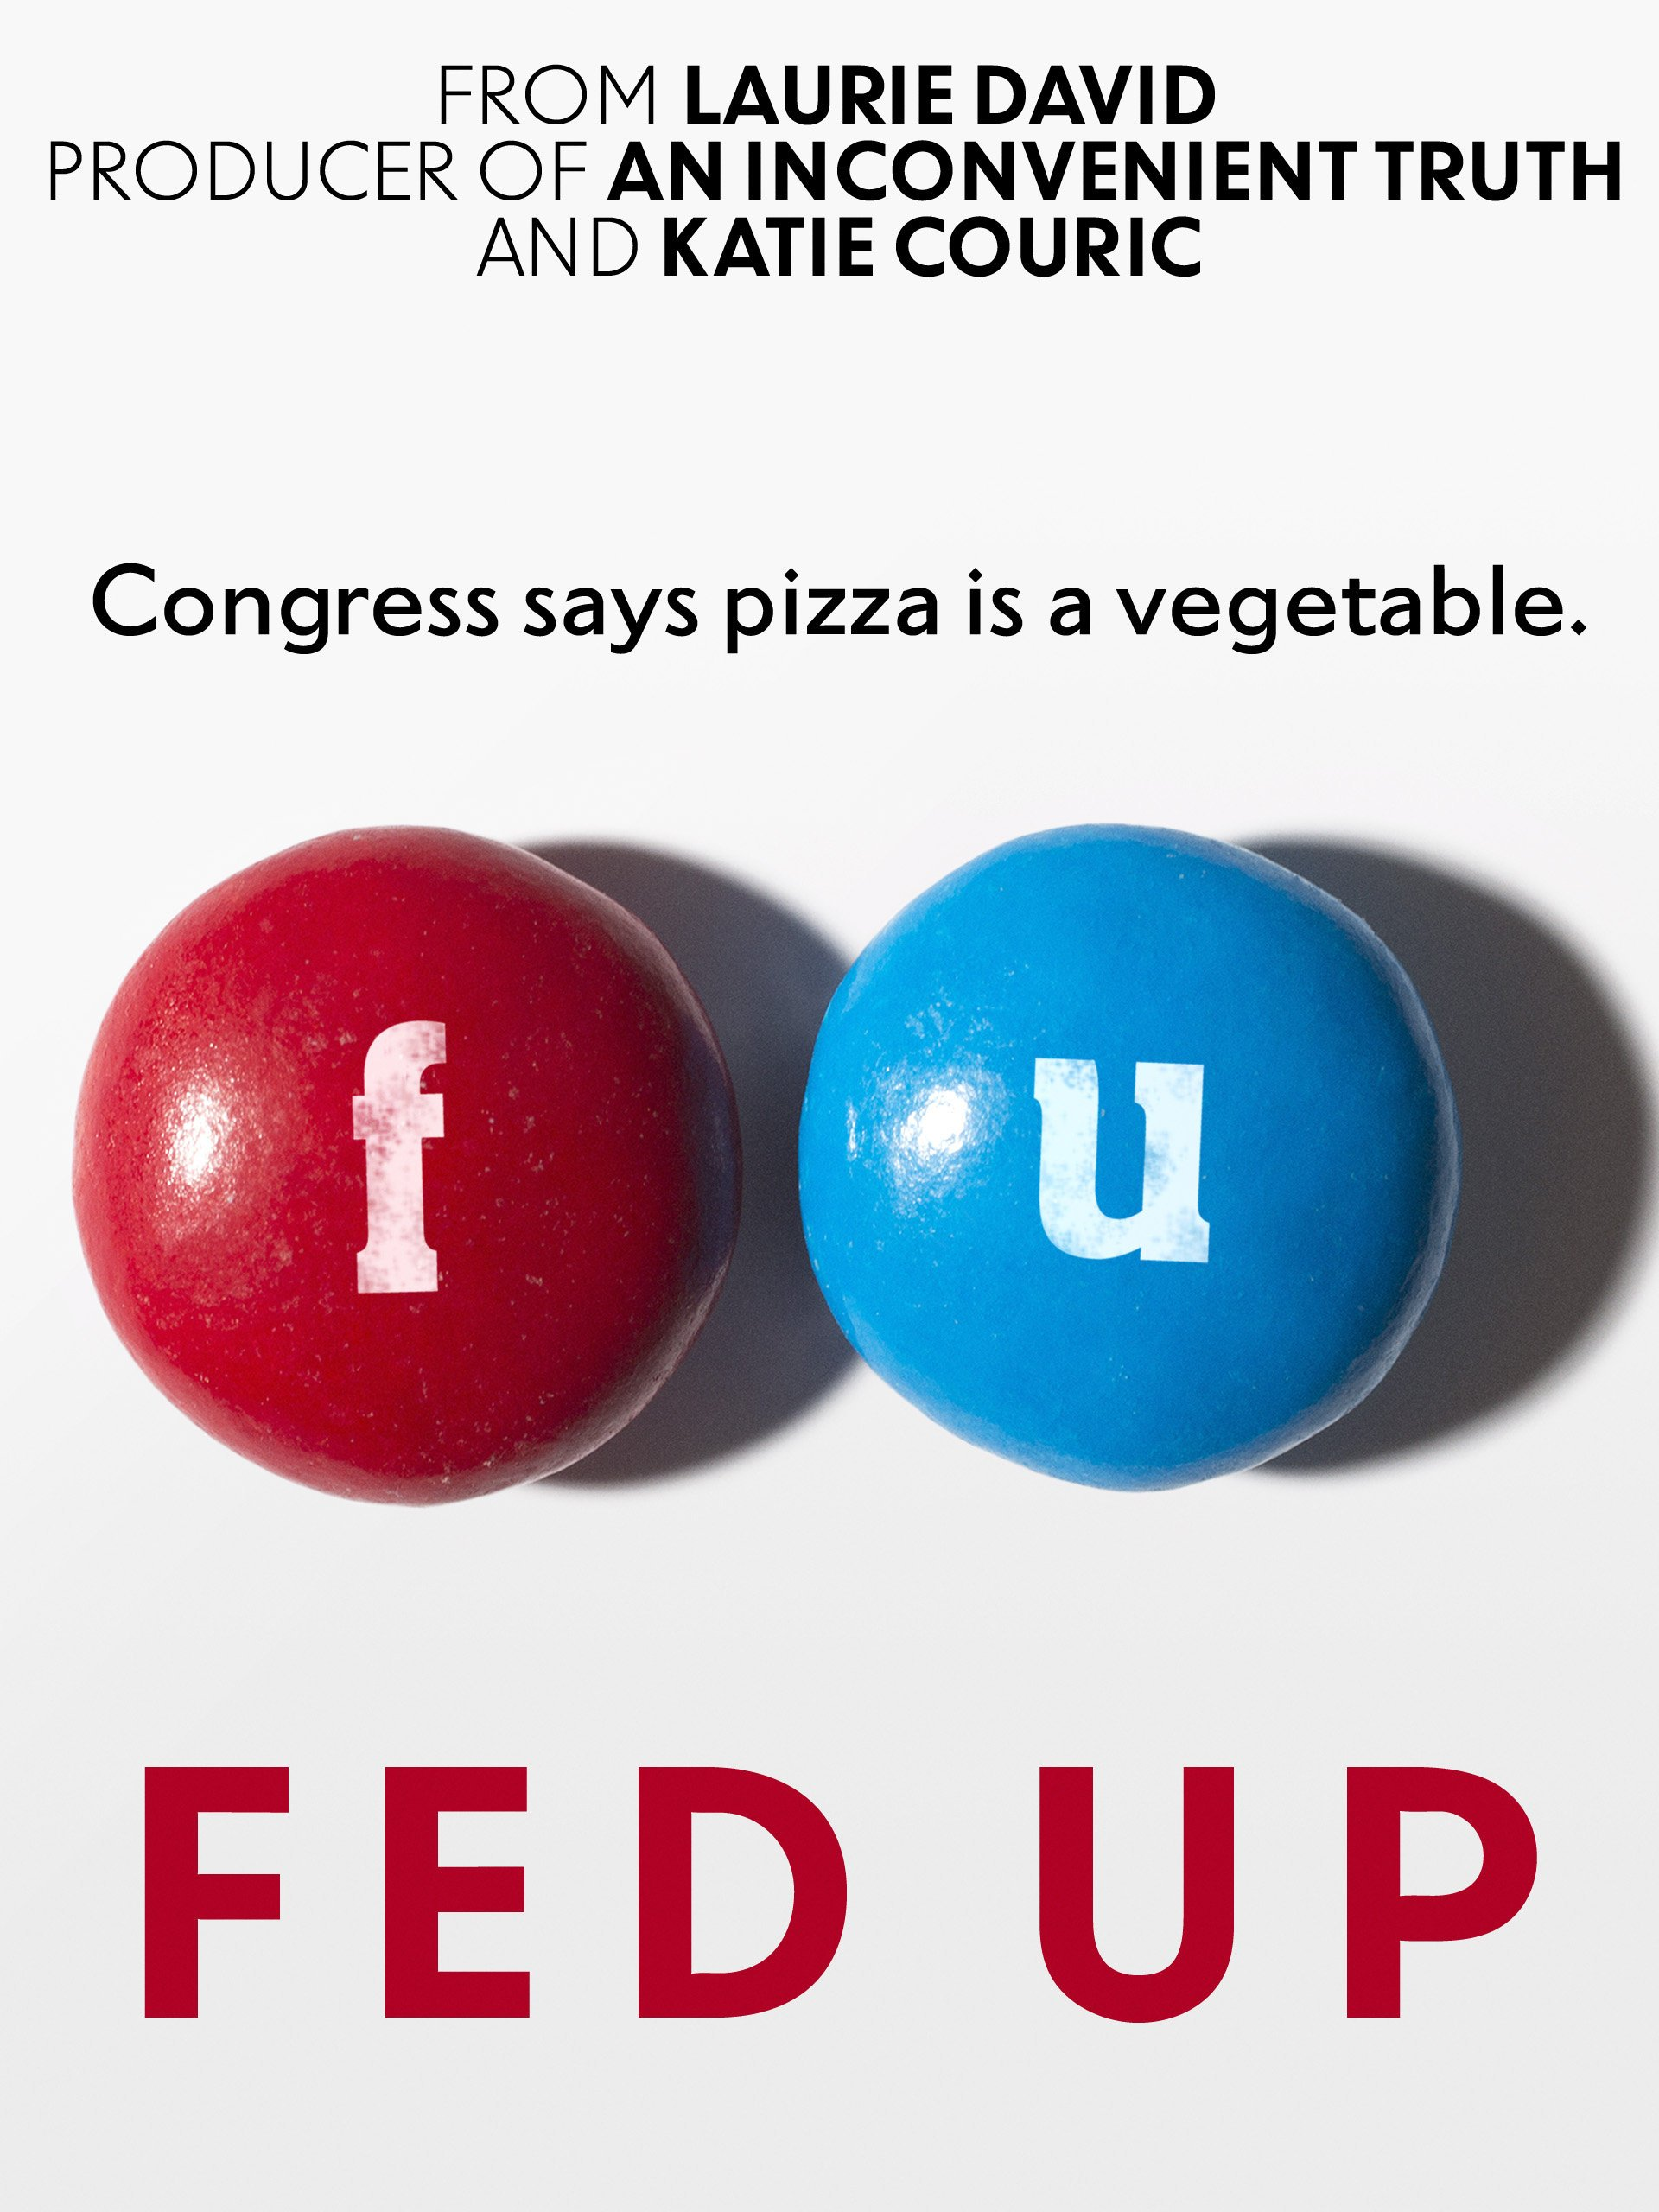 Fed Up documentary poster